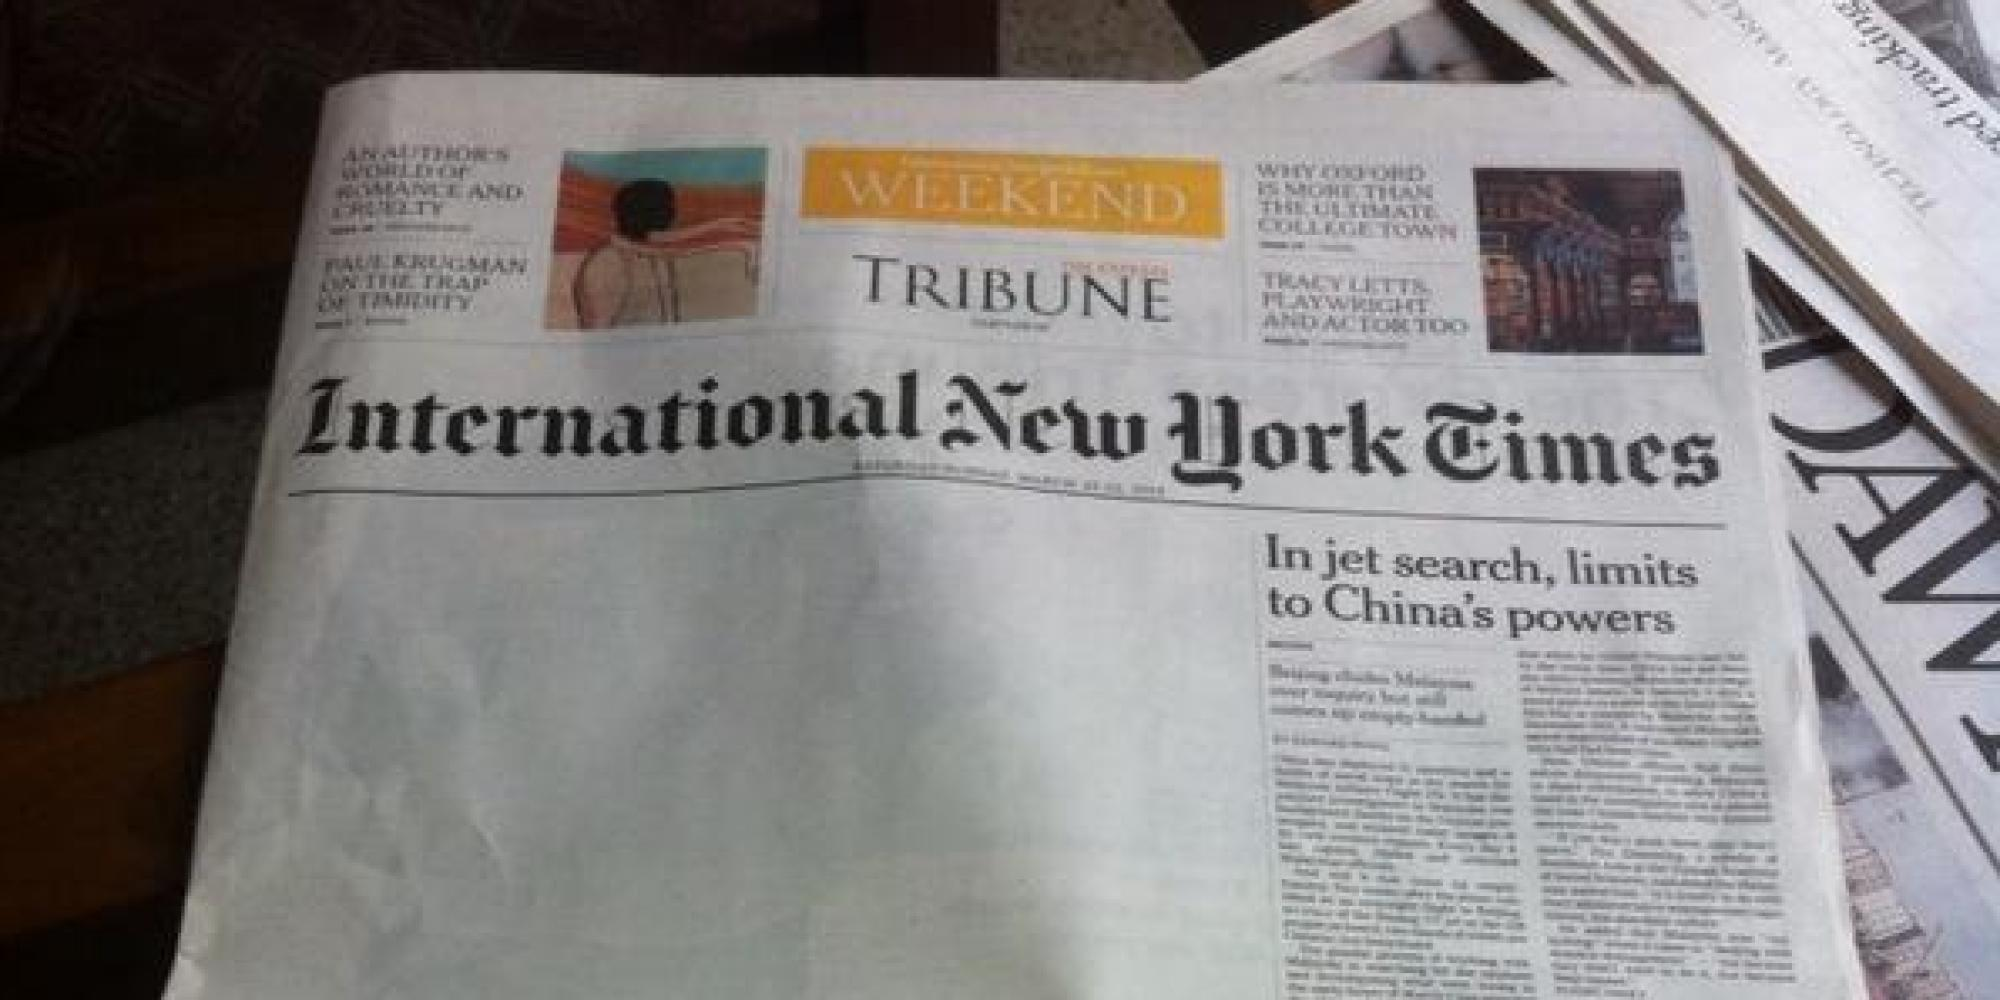 Pakistan Printer Censors New York Times Front Page Article